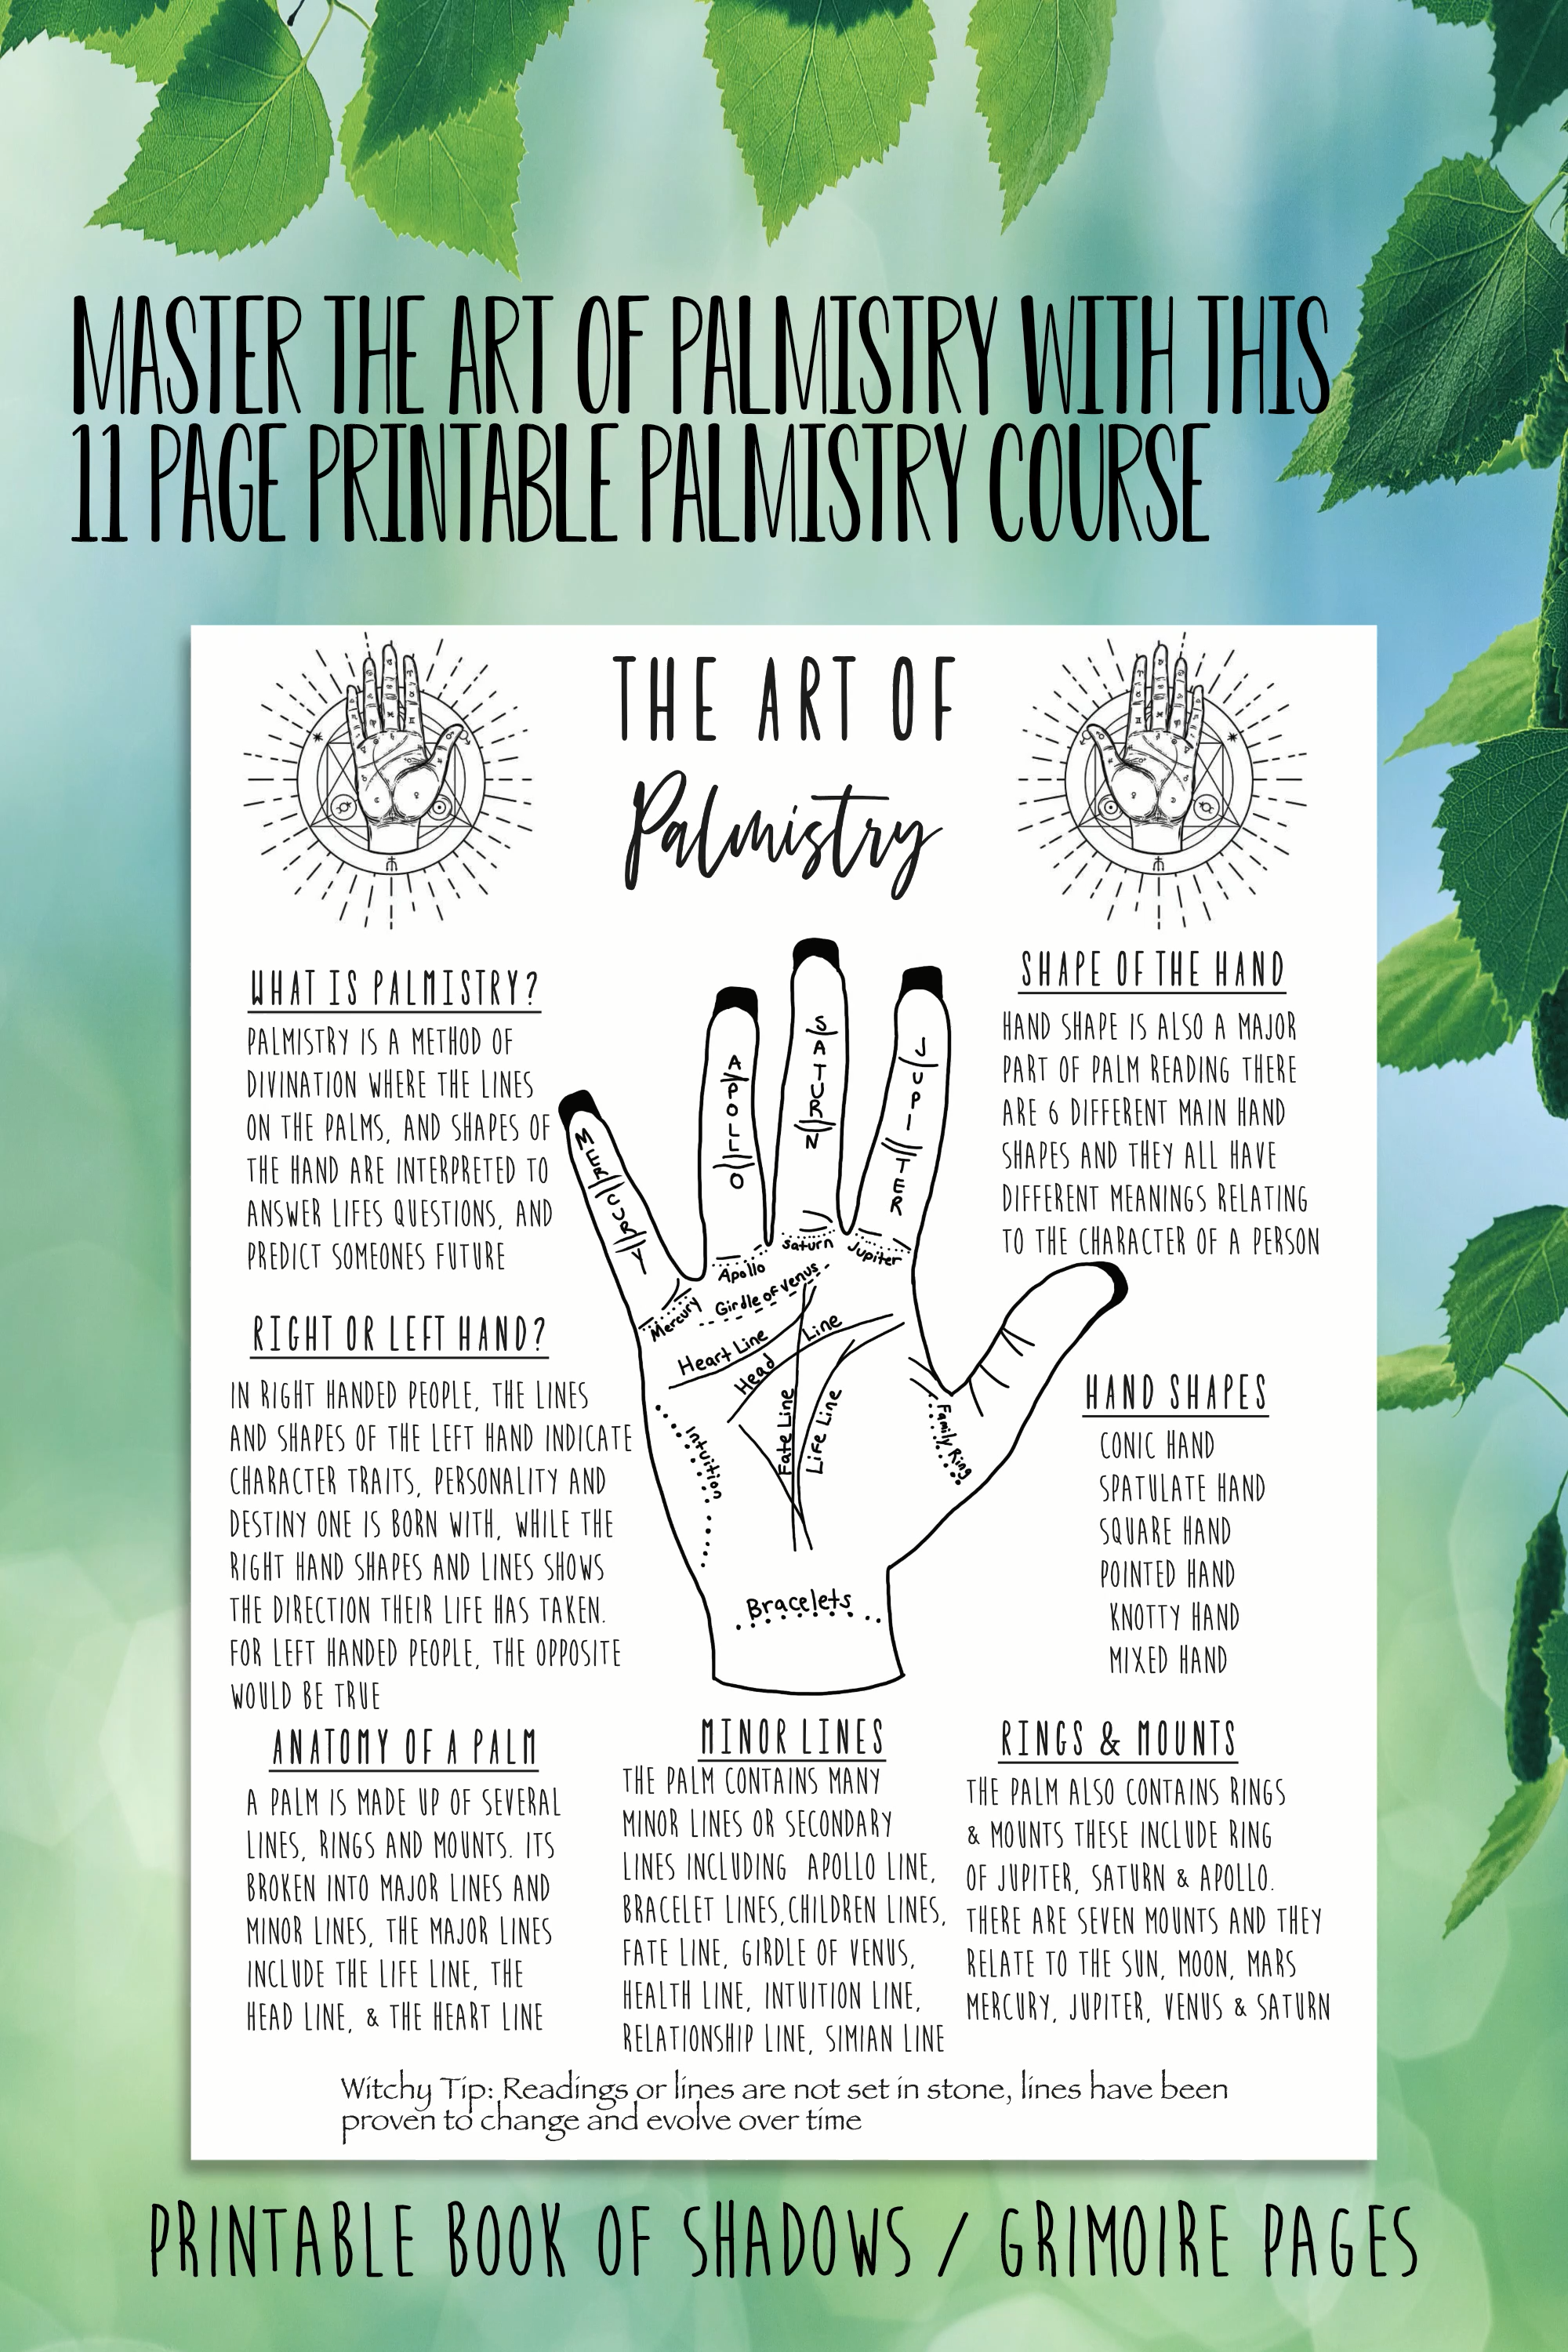 Palmistry Book Of Shadows Pages Witch Supplies Tools Reference Page Basic Witchcraft Grimoire Printable Pages How To Read Palms Video Video Palm Reading Charts Book Of Shadows Reading For Beginners [ 3000 x 2000 Pixel ]